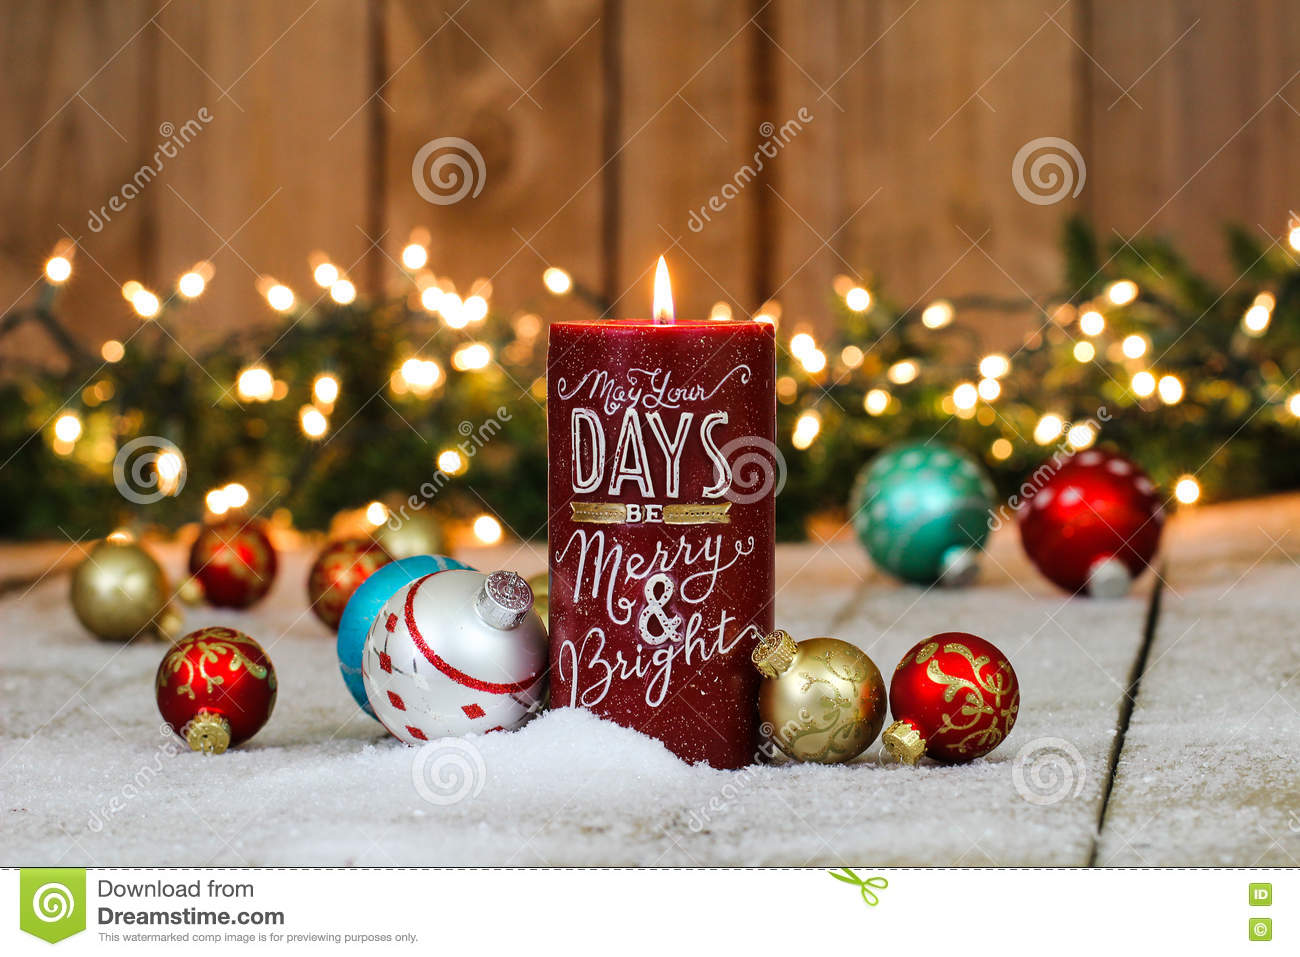 christmas background with red candle colorful ornaments and string of holiday lights and garland border in snow teal blue silver gold red green